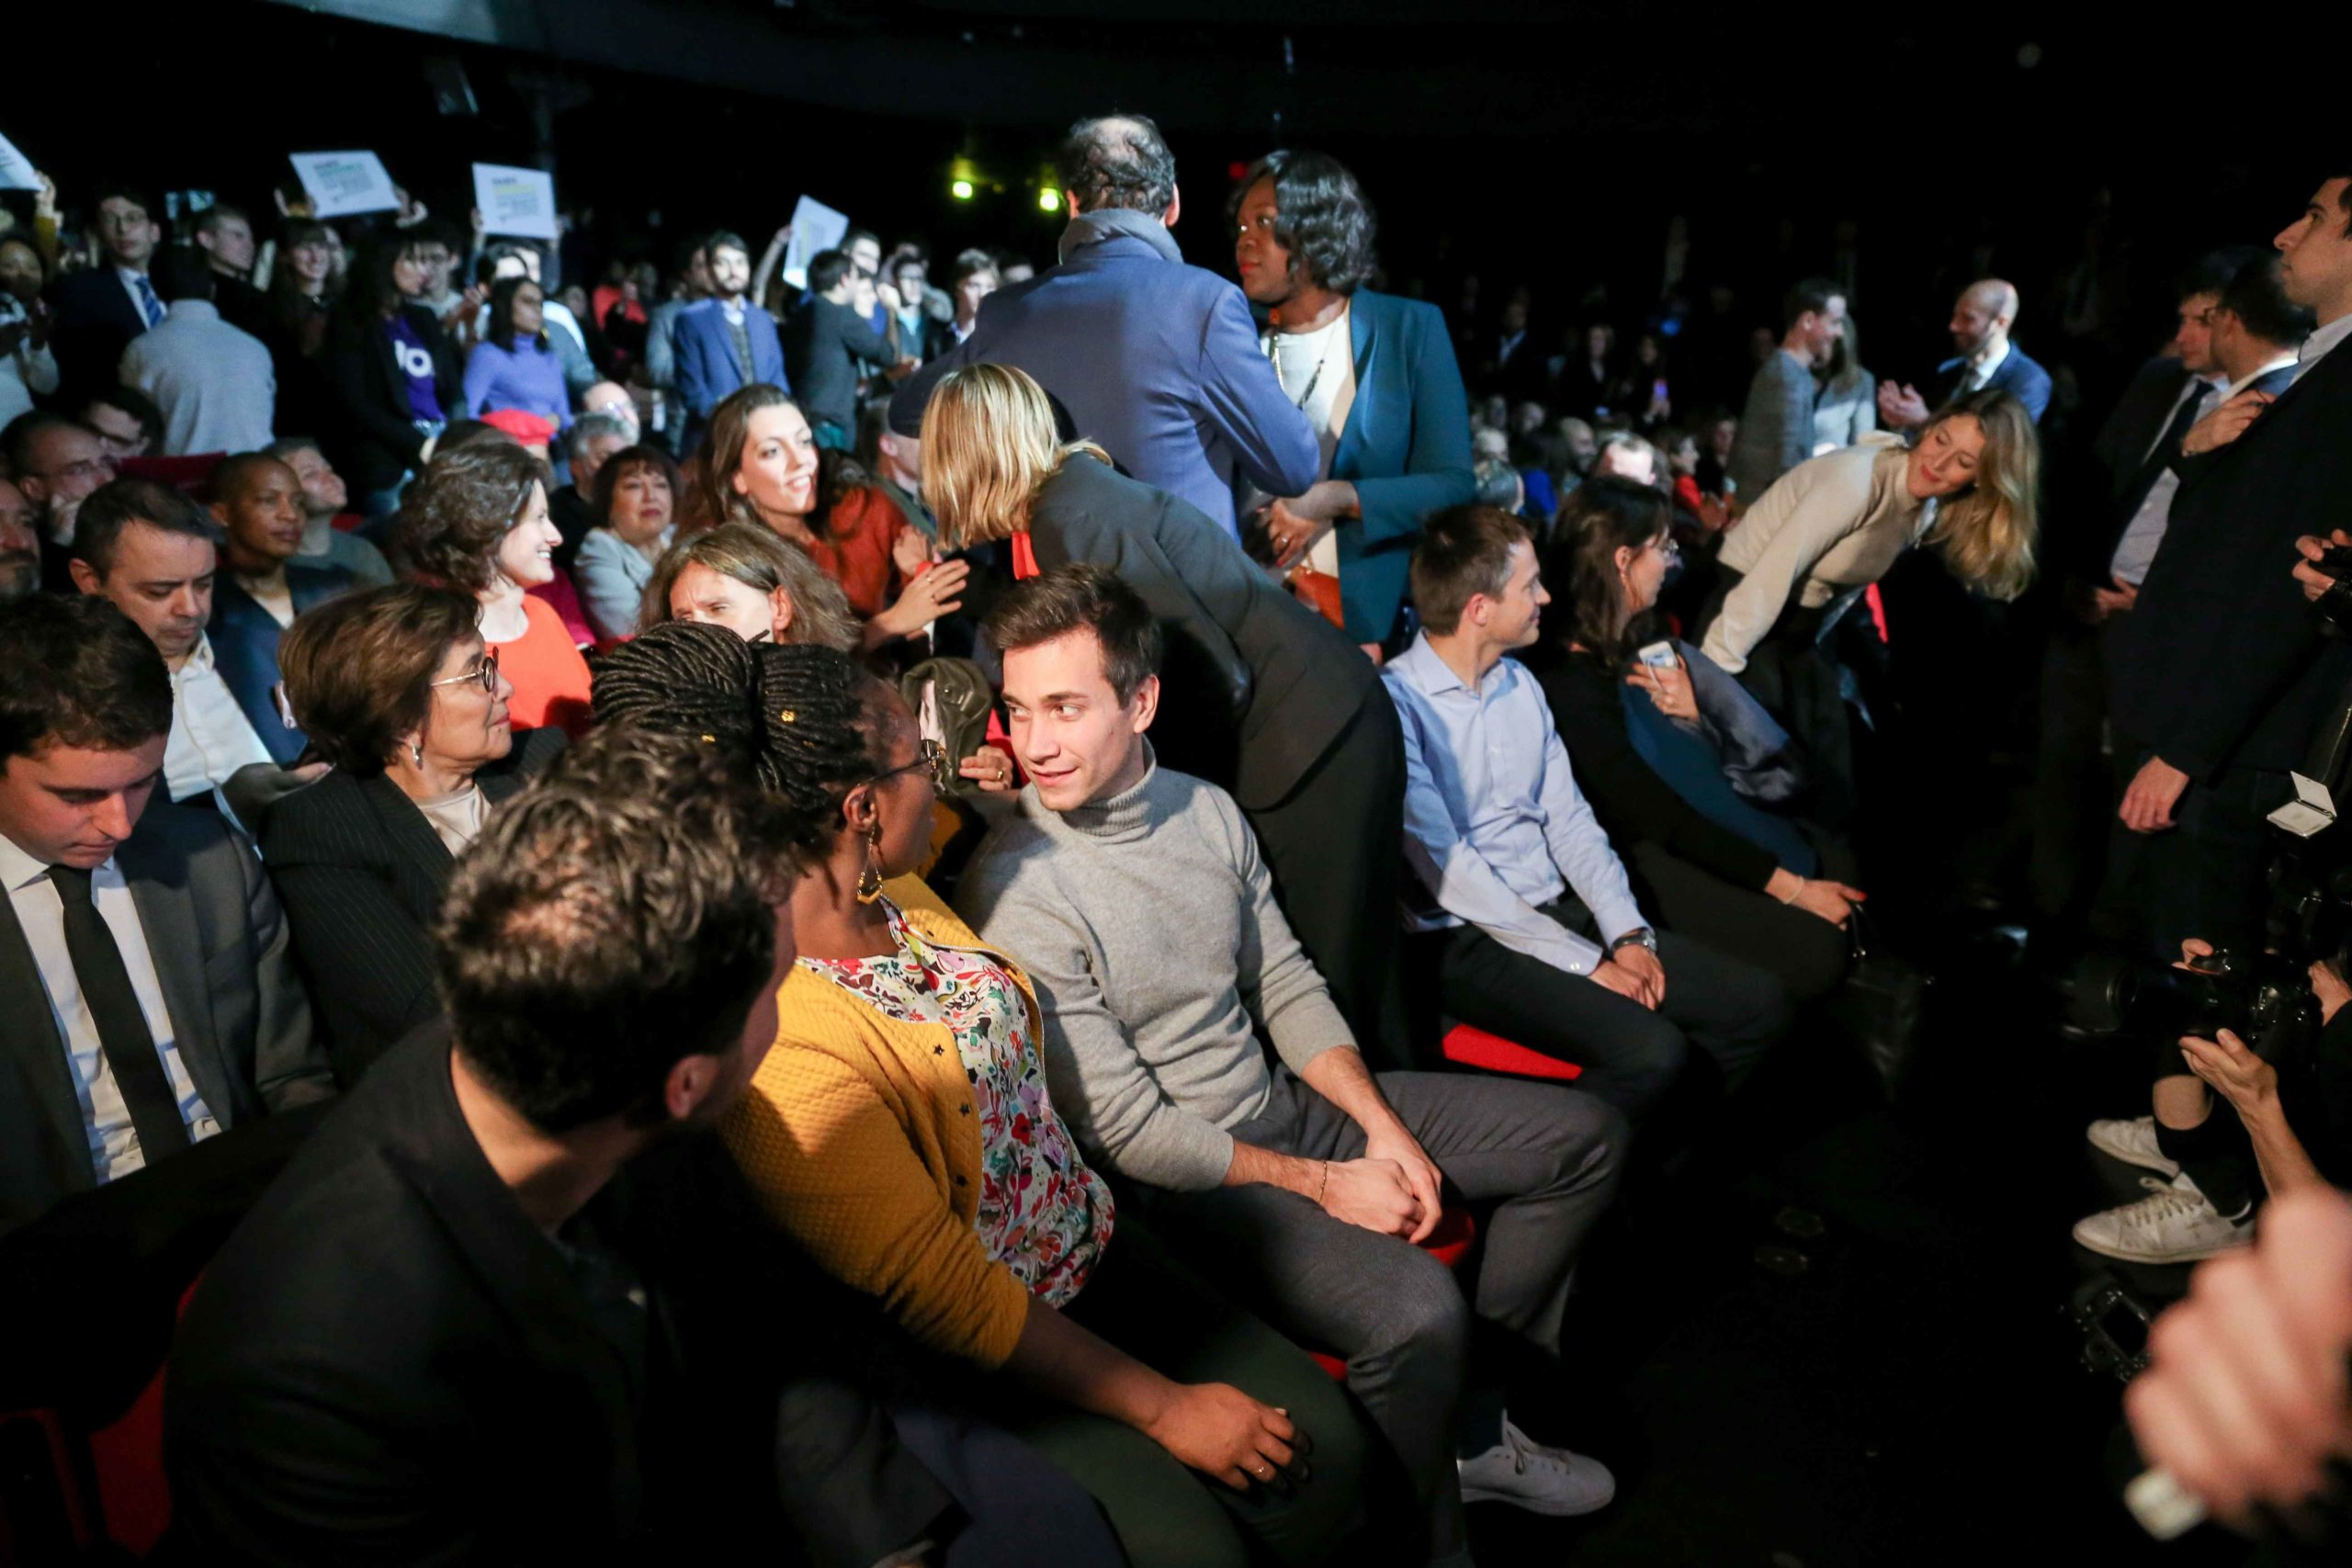 Politicians attend the Benjamin Griveaux meeting, at the Bobino theater in Paris, on January 27, 2020. Benjamin Griveaux is the official La Republique en Marche (LREM) candidate for the Paris 2020 mayoral election but the mathematician Cédric Villani, who